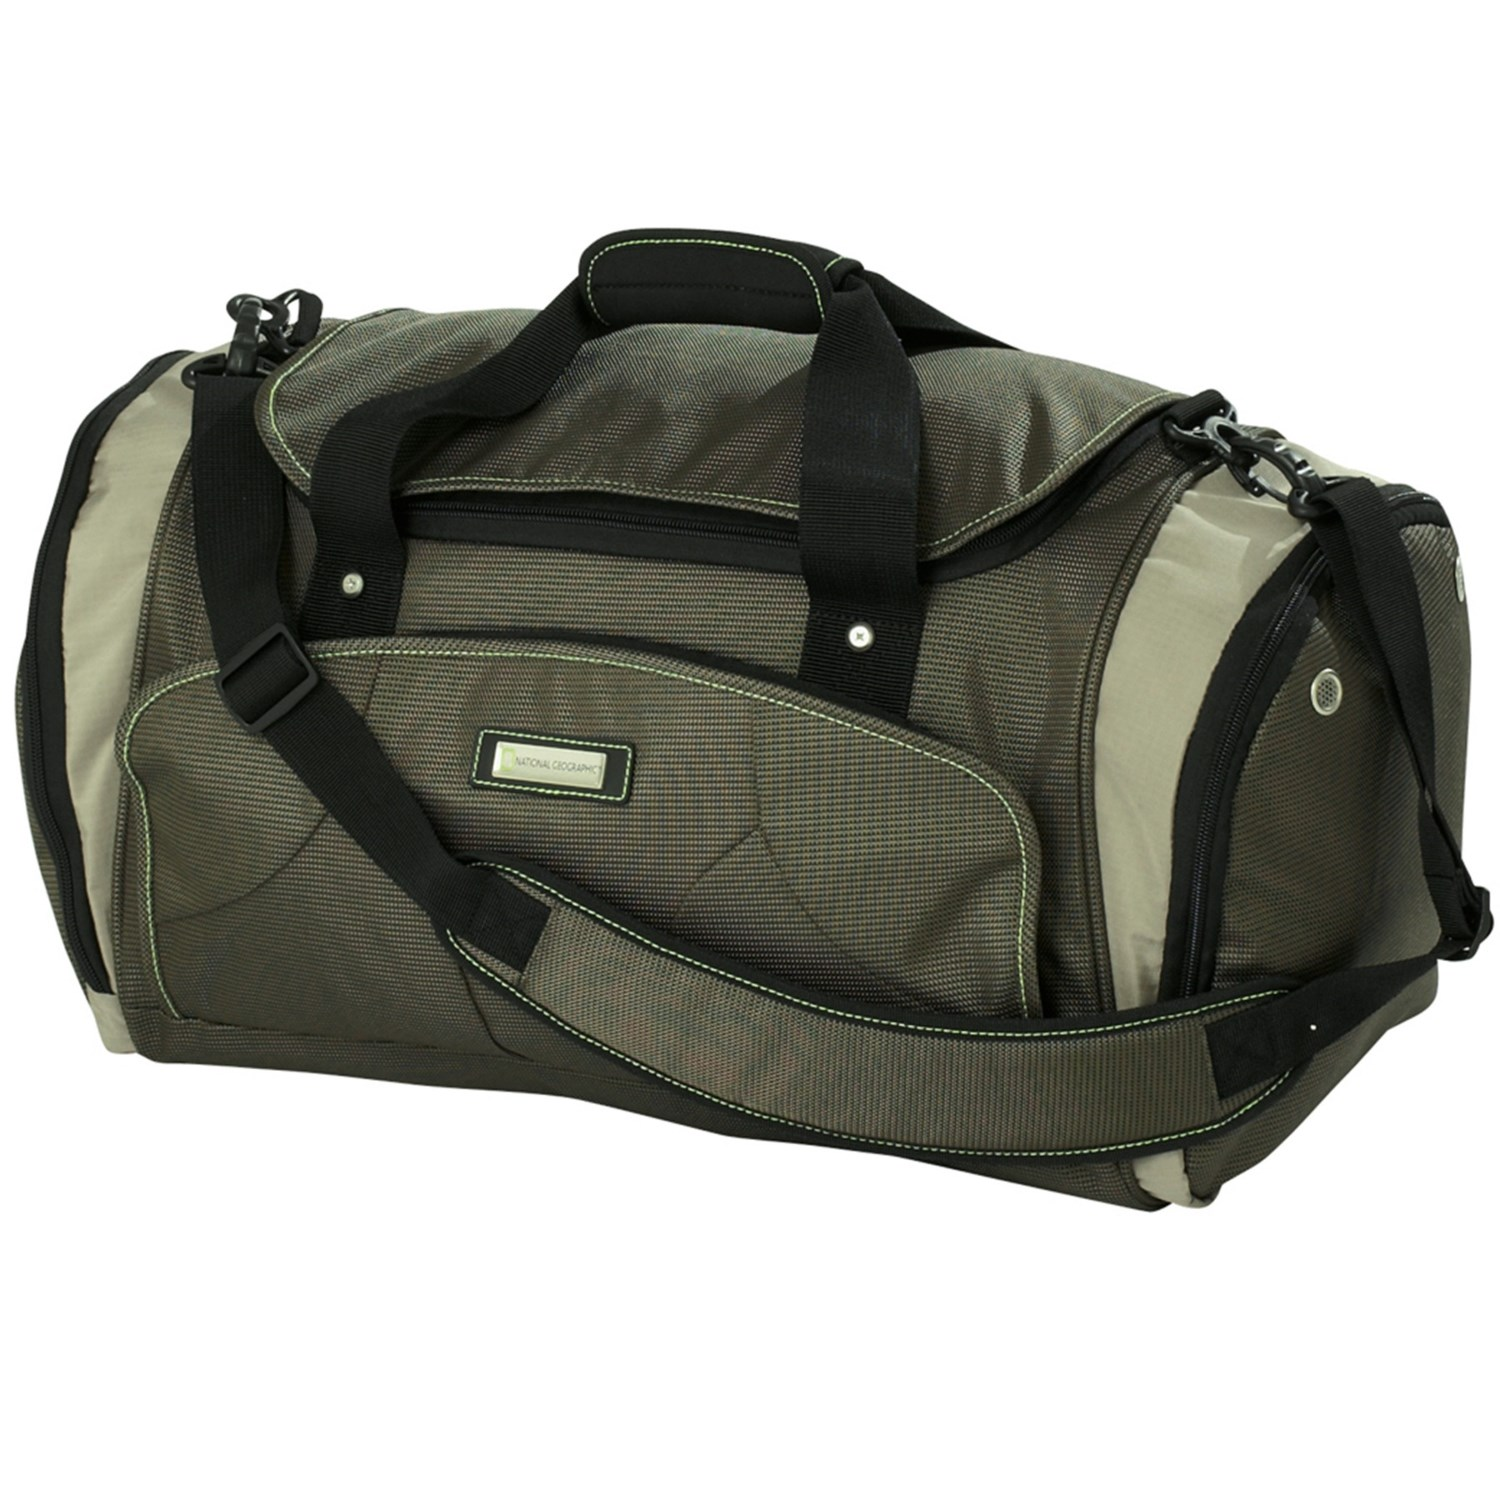 Travelpro Northwall Collection Soft Carry On Duffel Bag